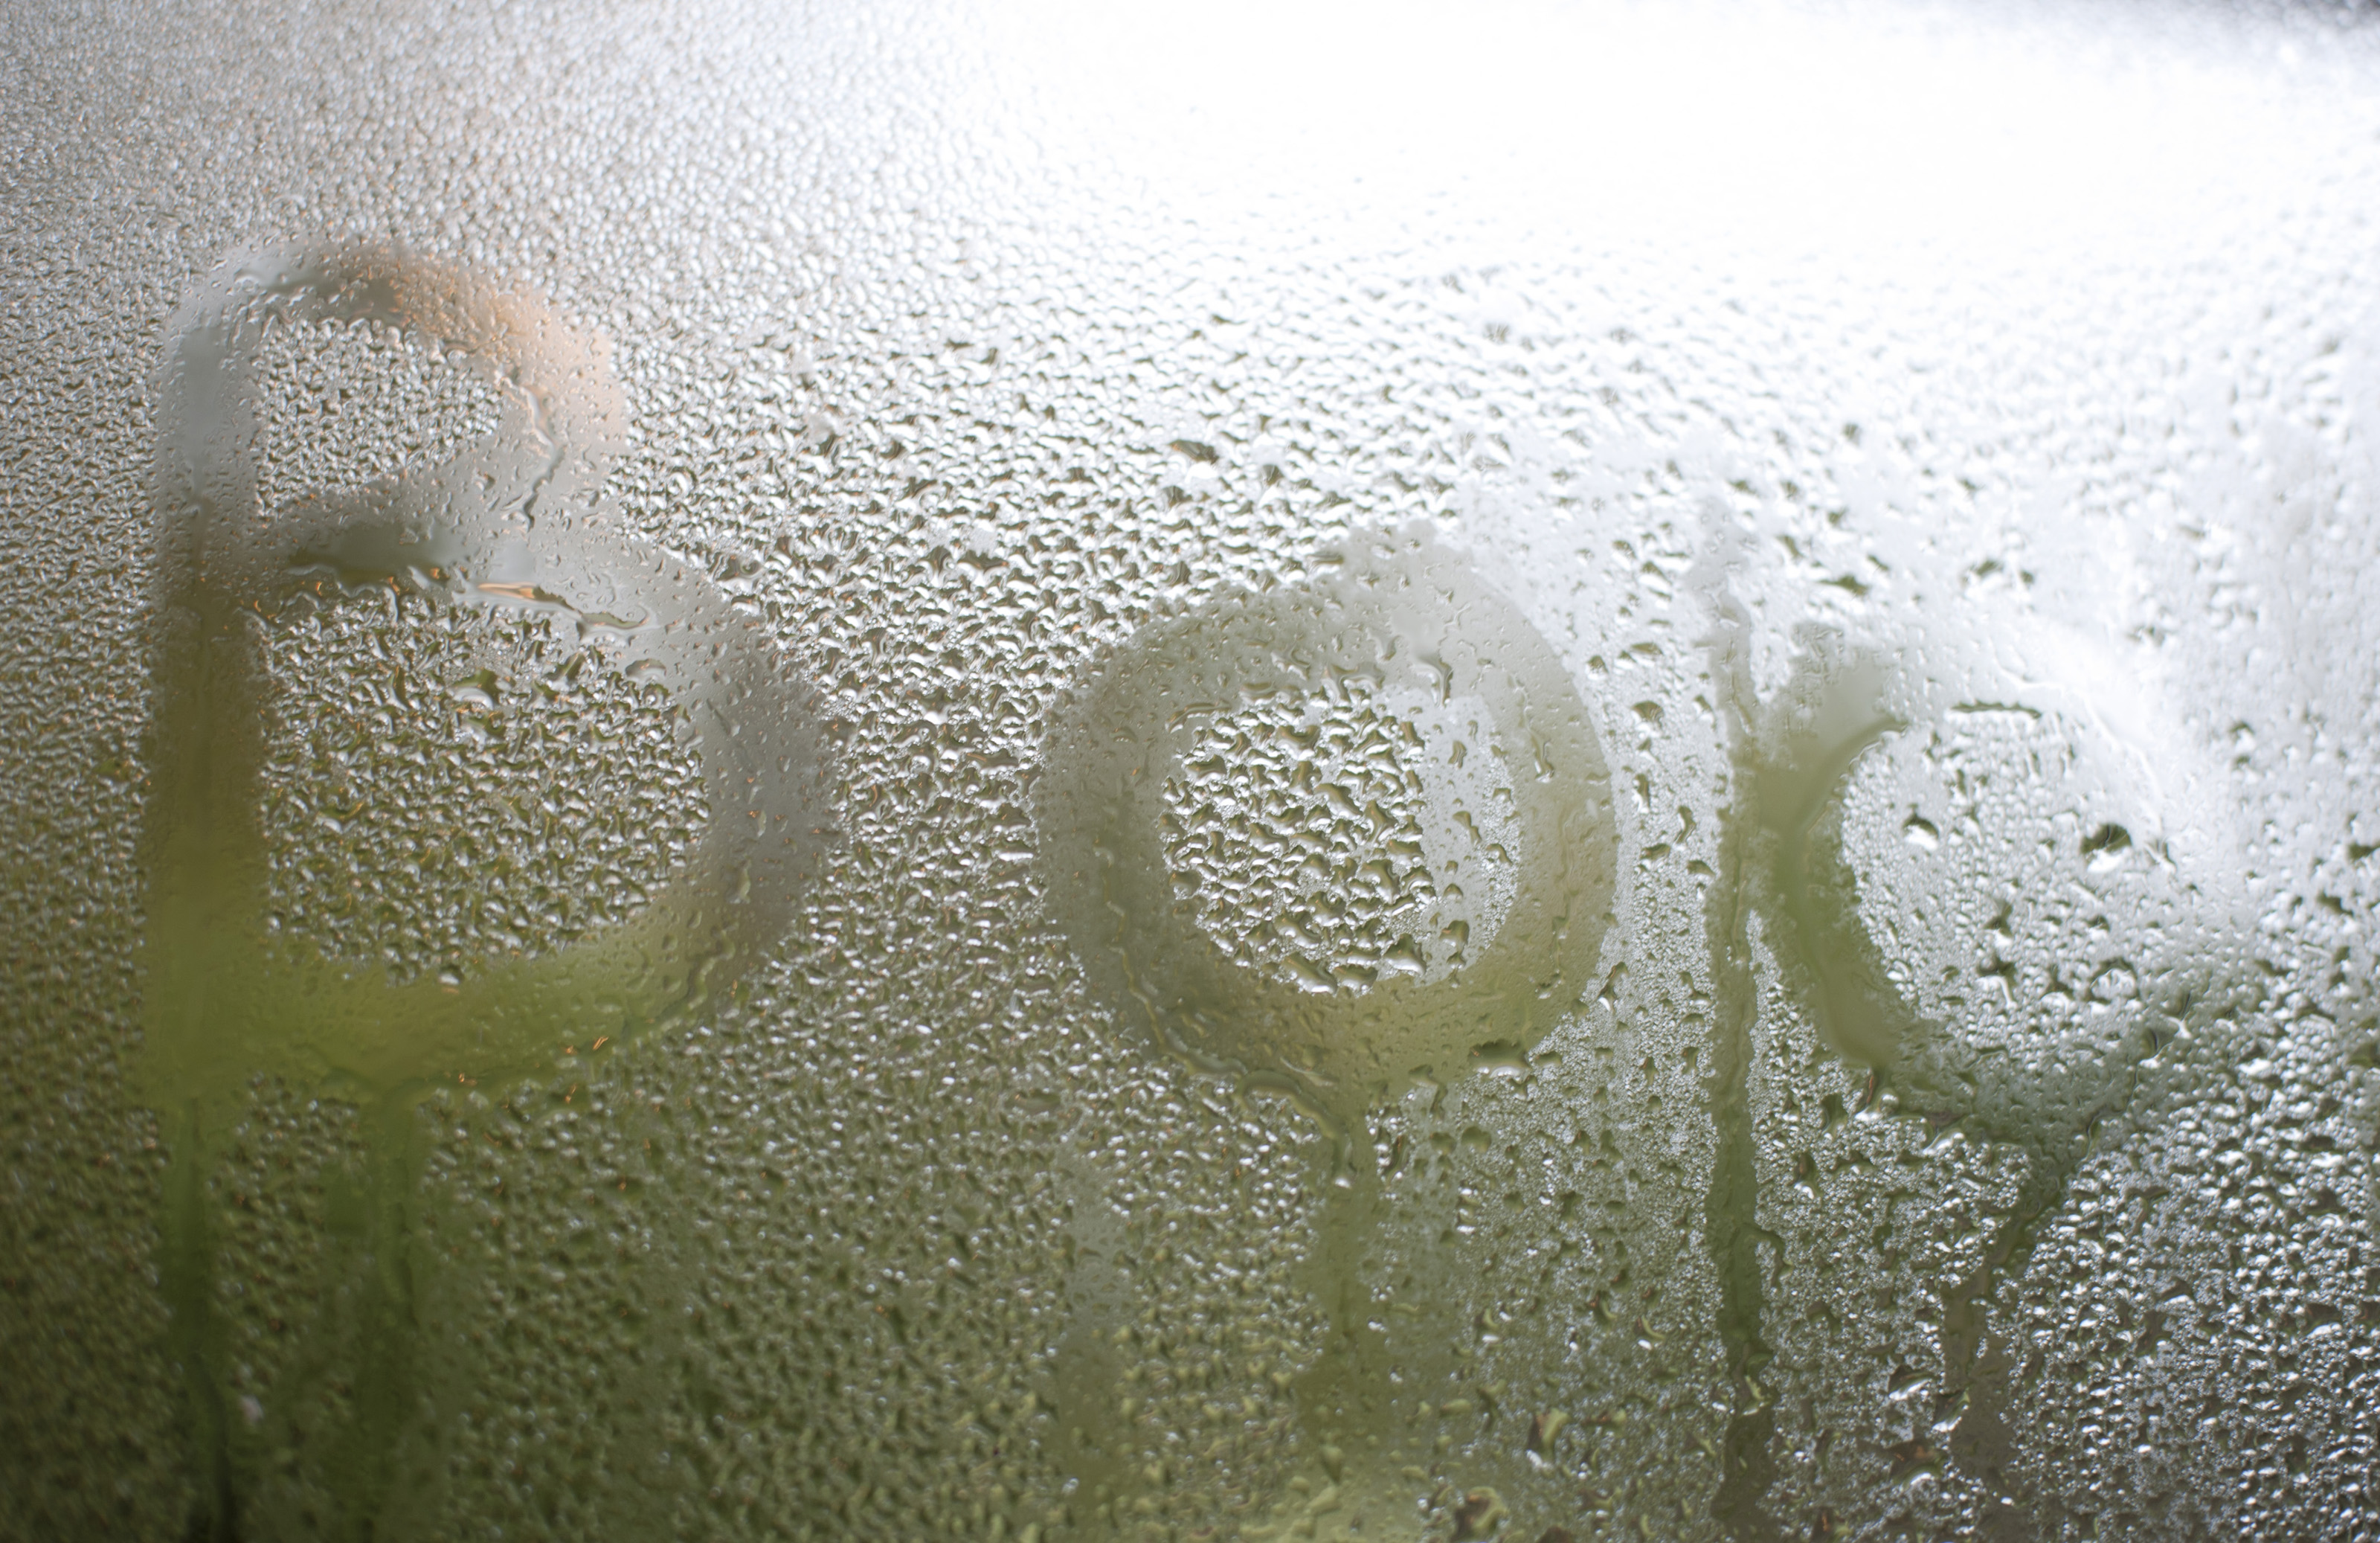 Image Of Boo Written On Condensation On A Glass Window